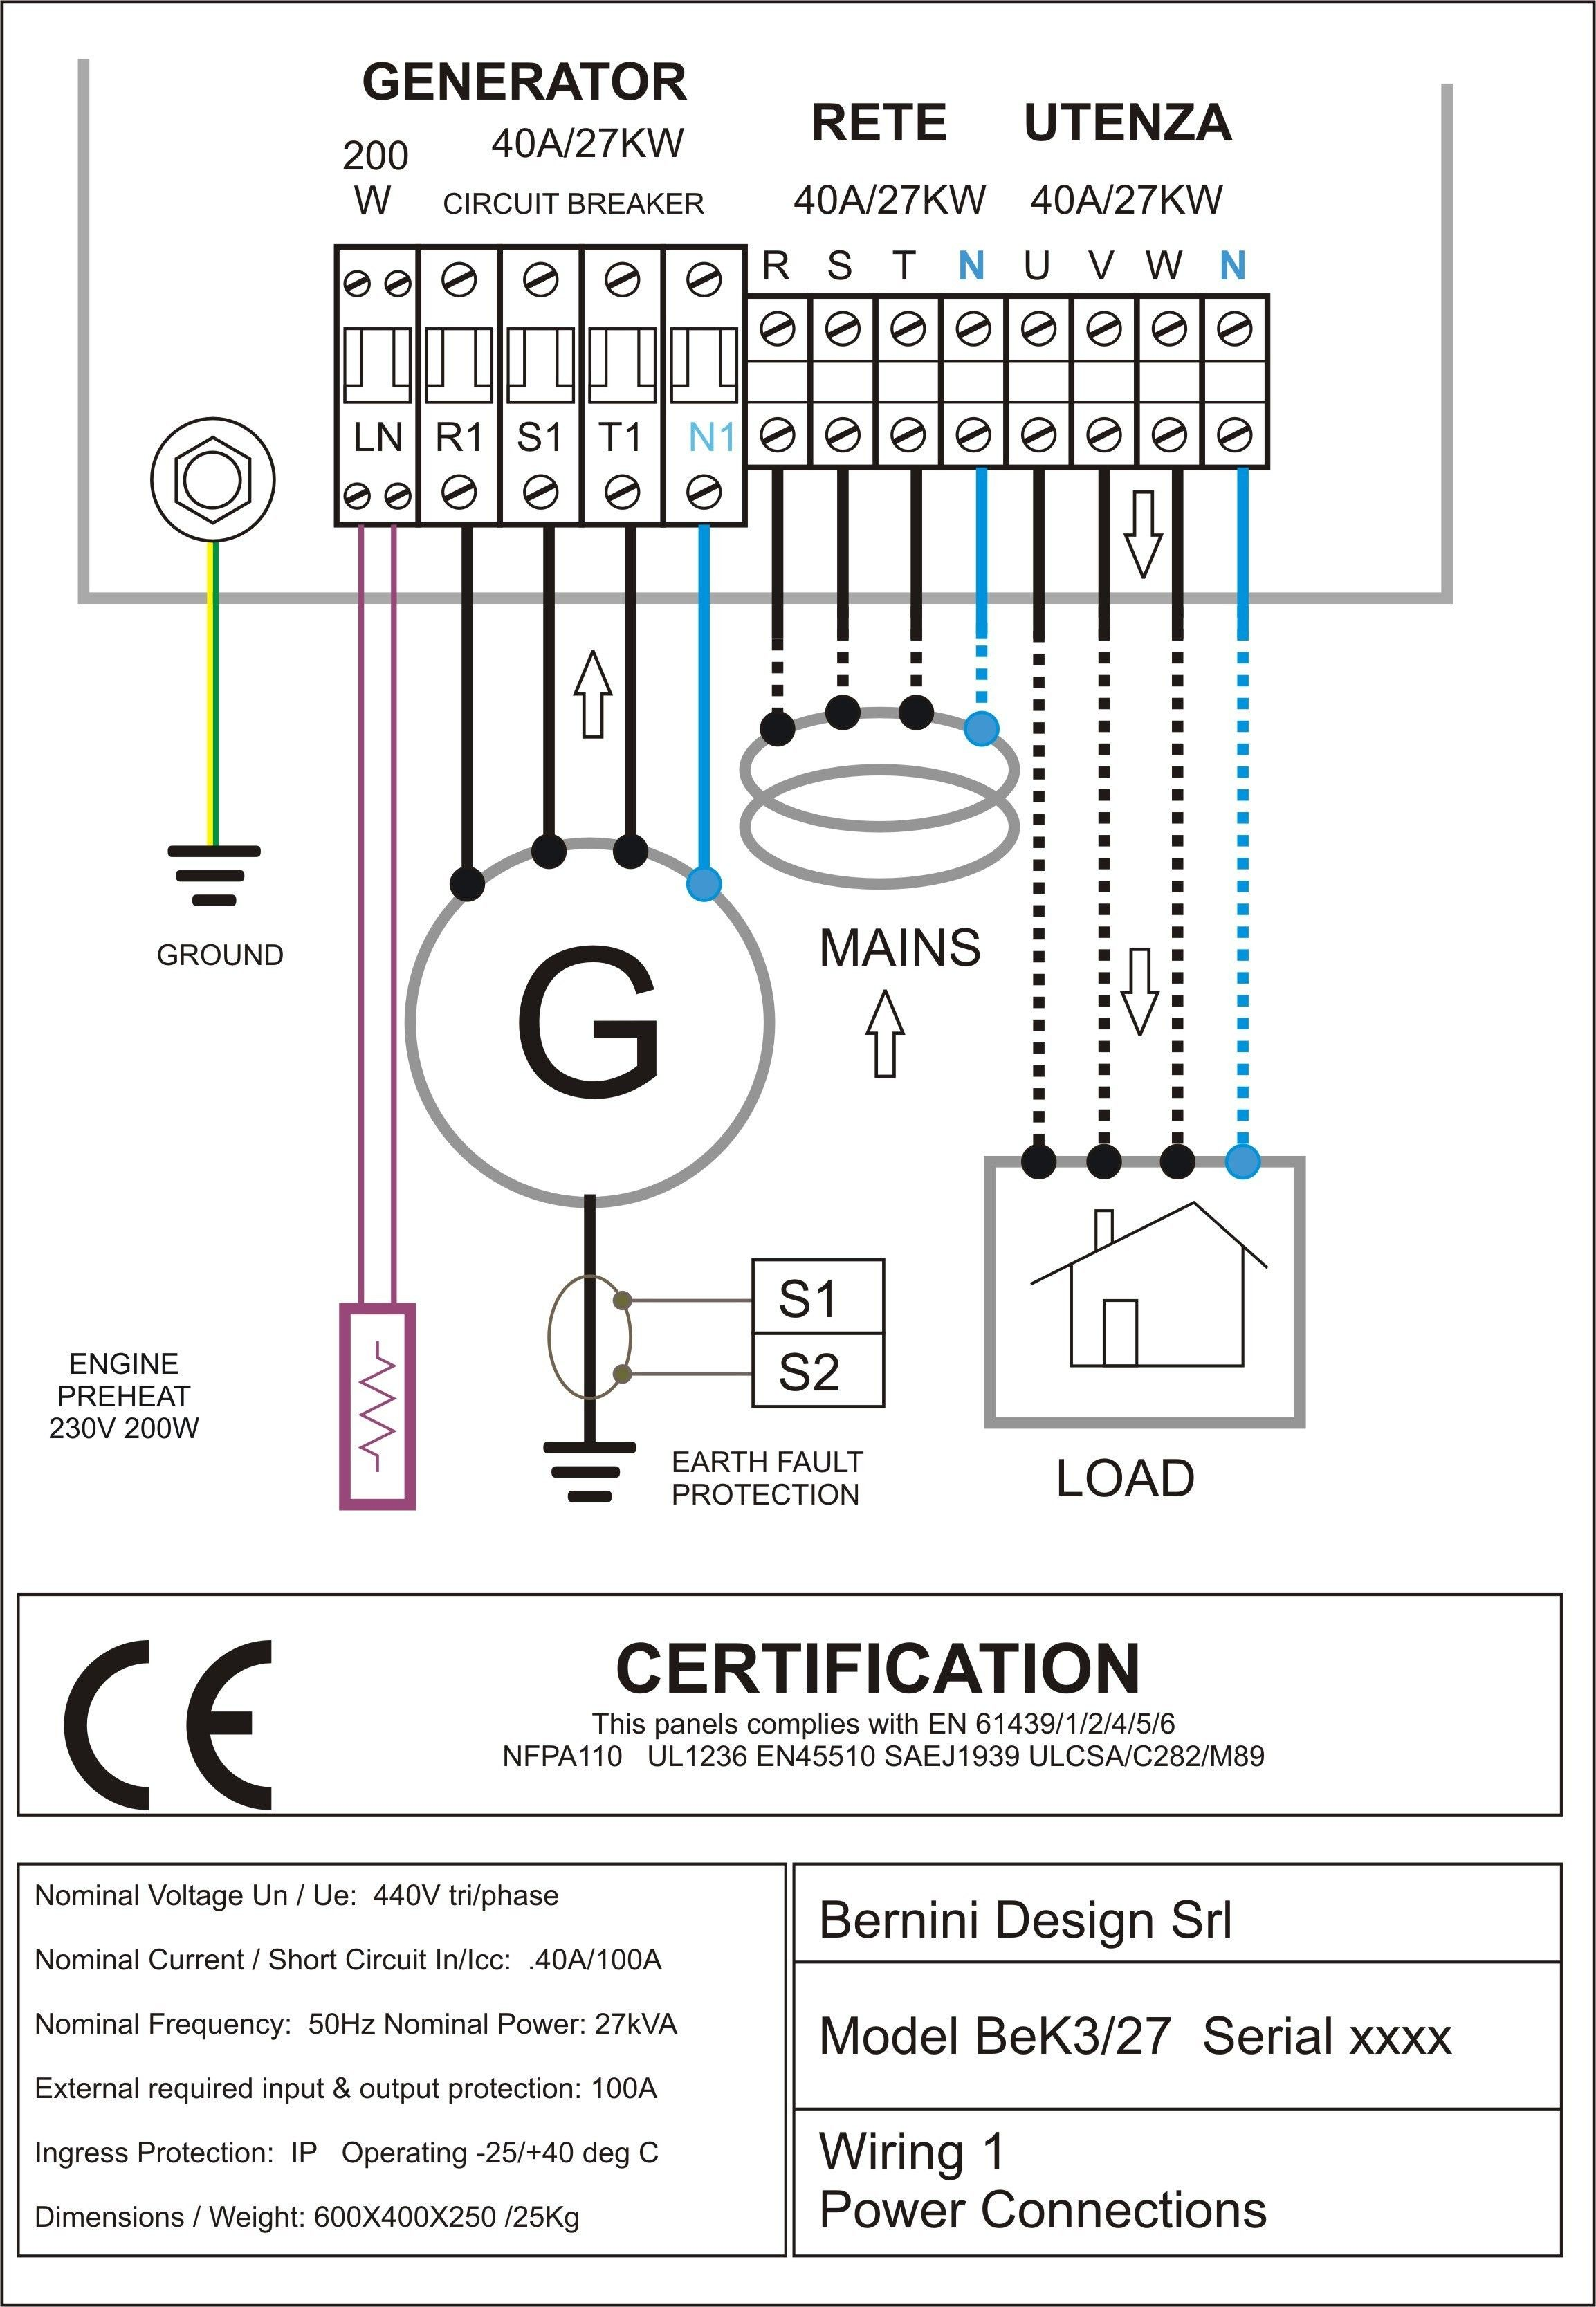 New Electrical Control Panel Wiring Diagram Diagram Wiringdiagram Diagramming Diagramm Visuals Visualisatio Electrical Circuit Diagram Diagram Generation